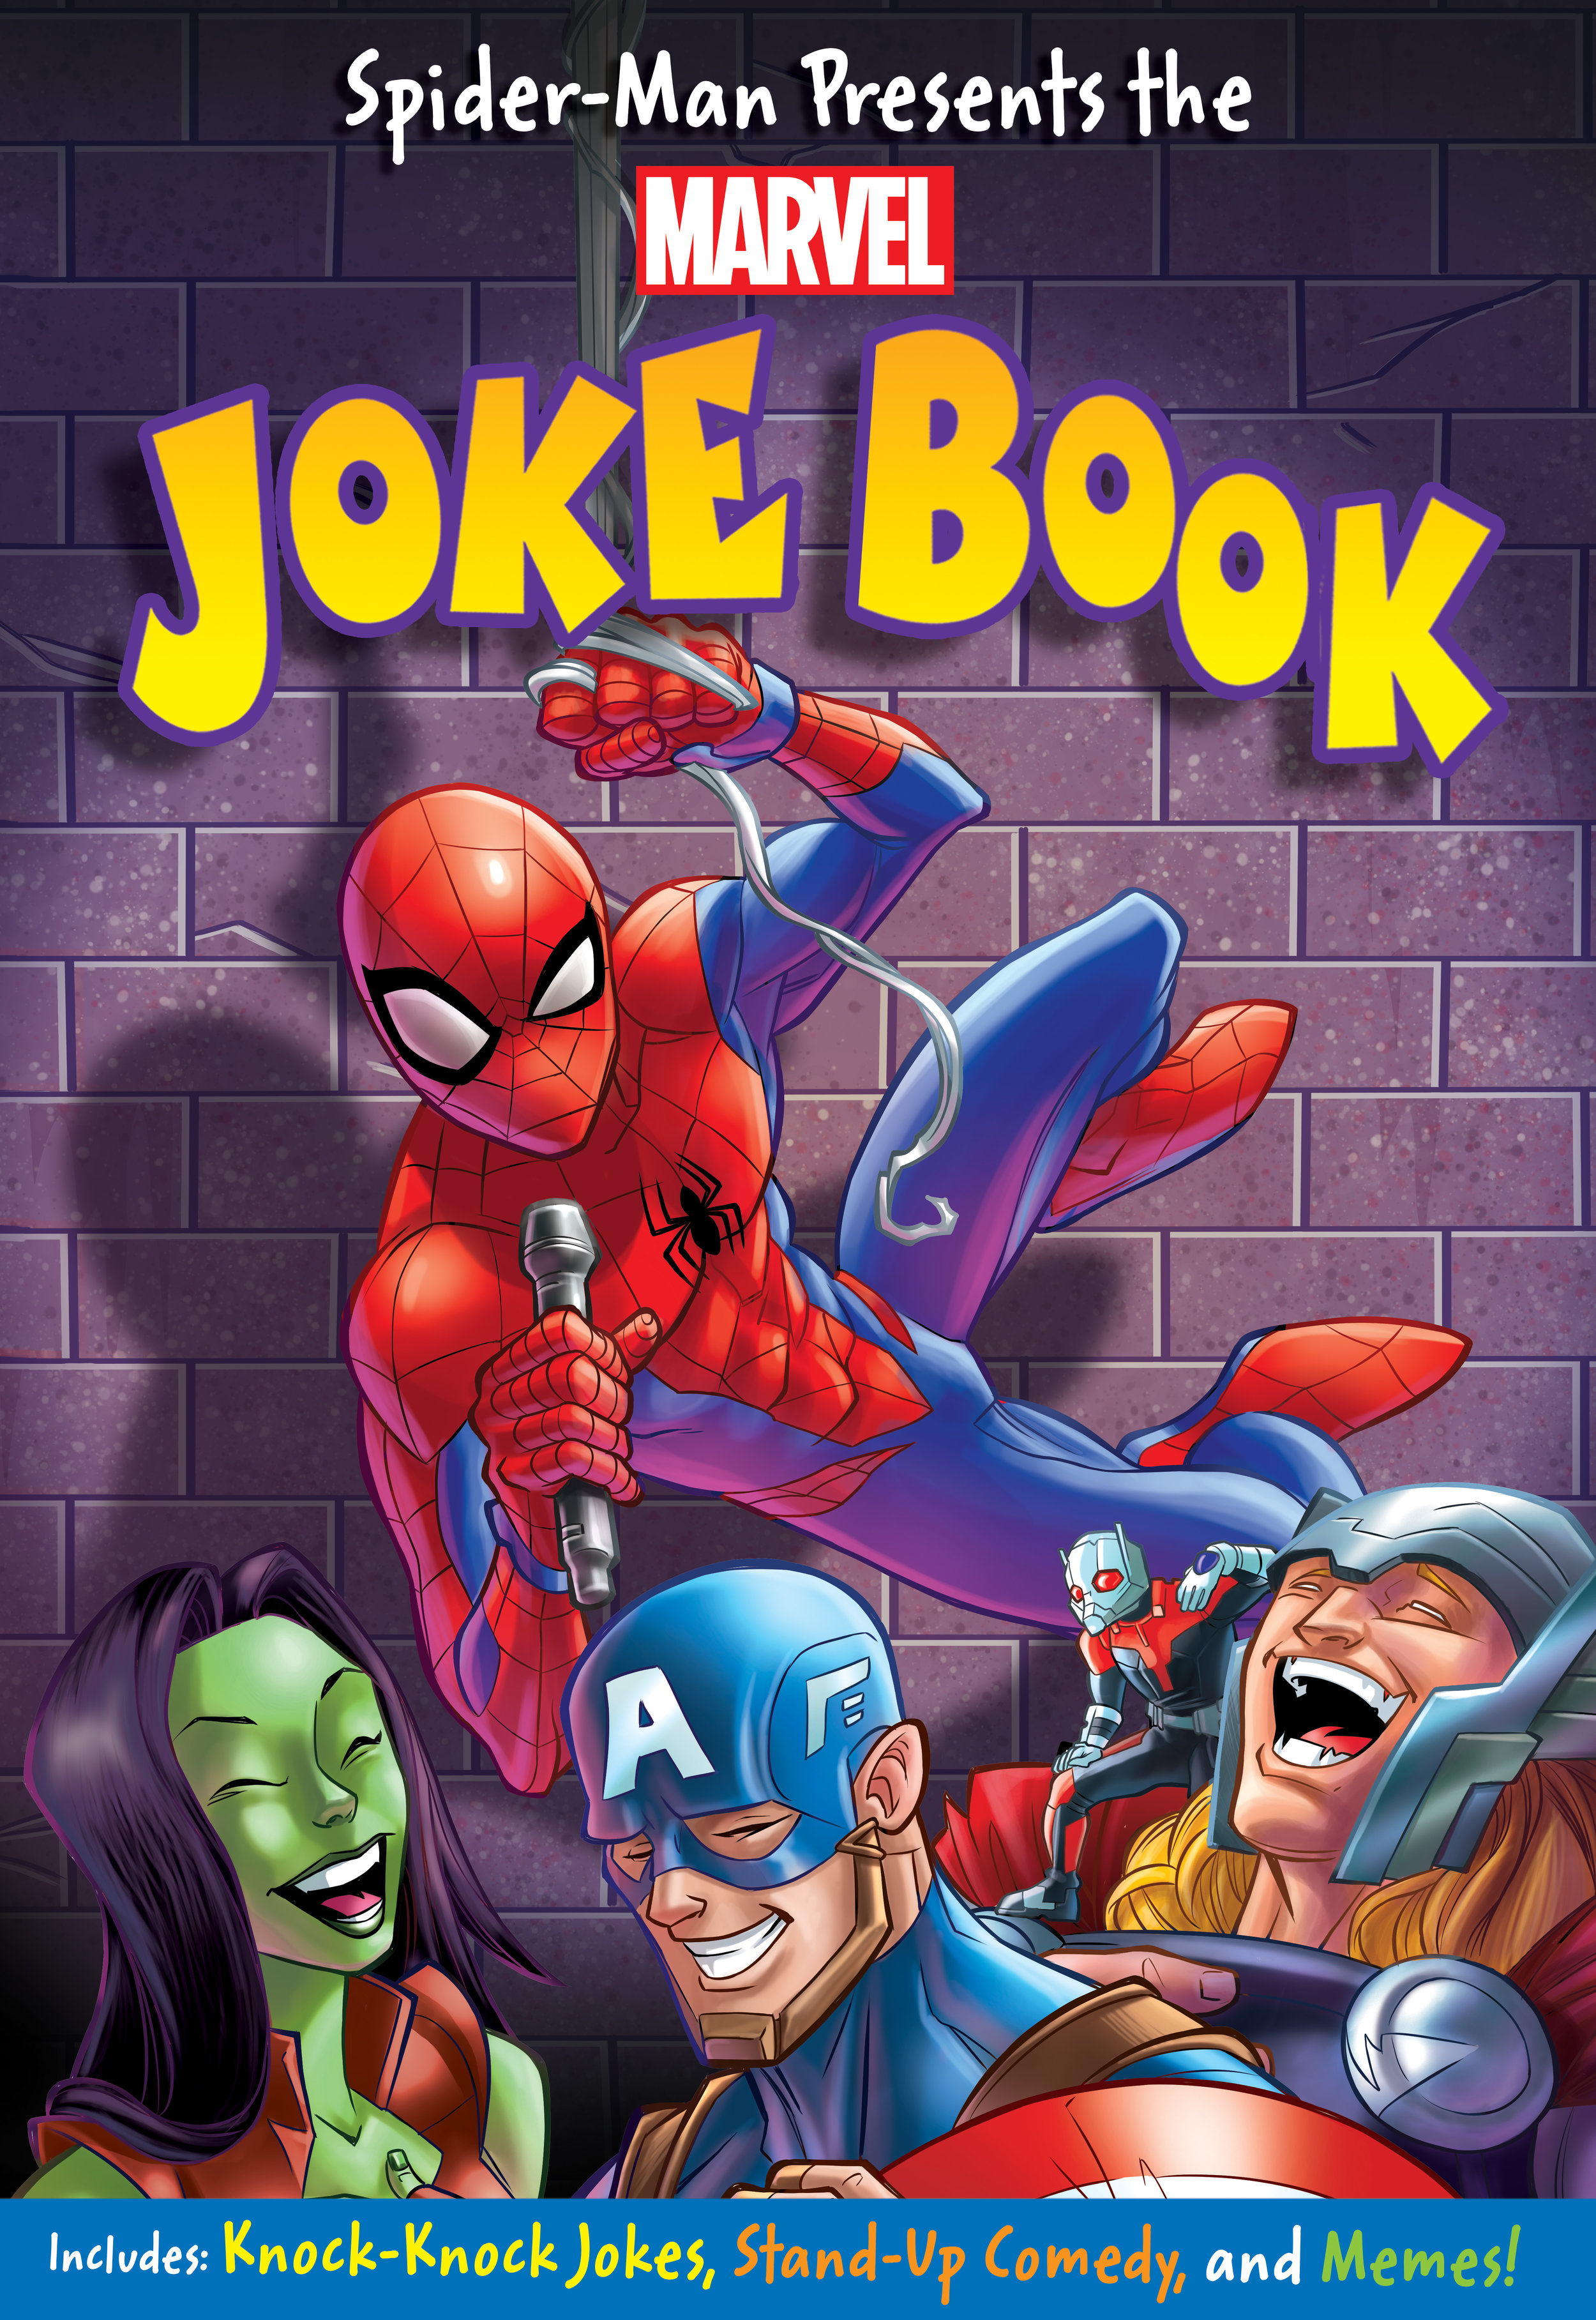 Spider-Man Presents the Marvel Joke Book